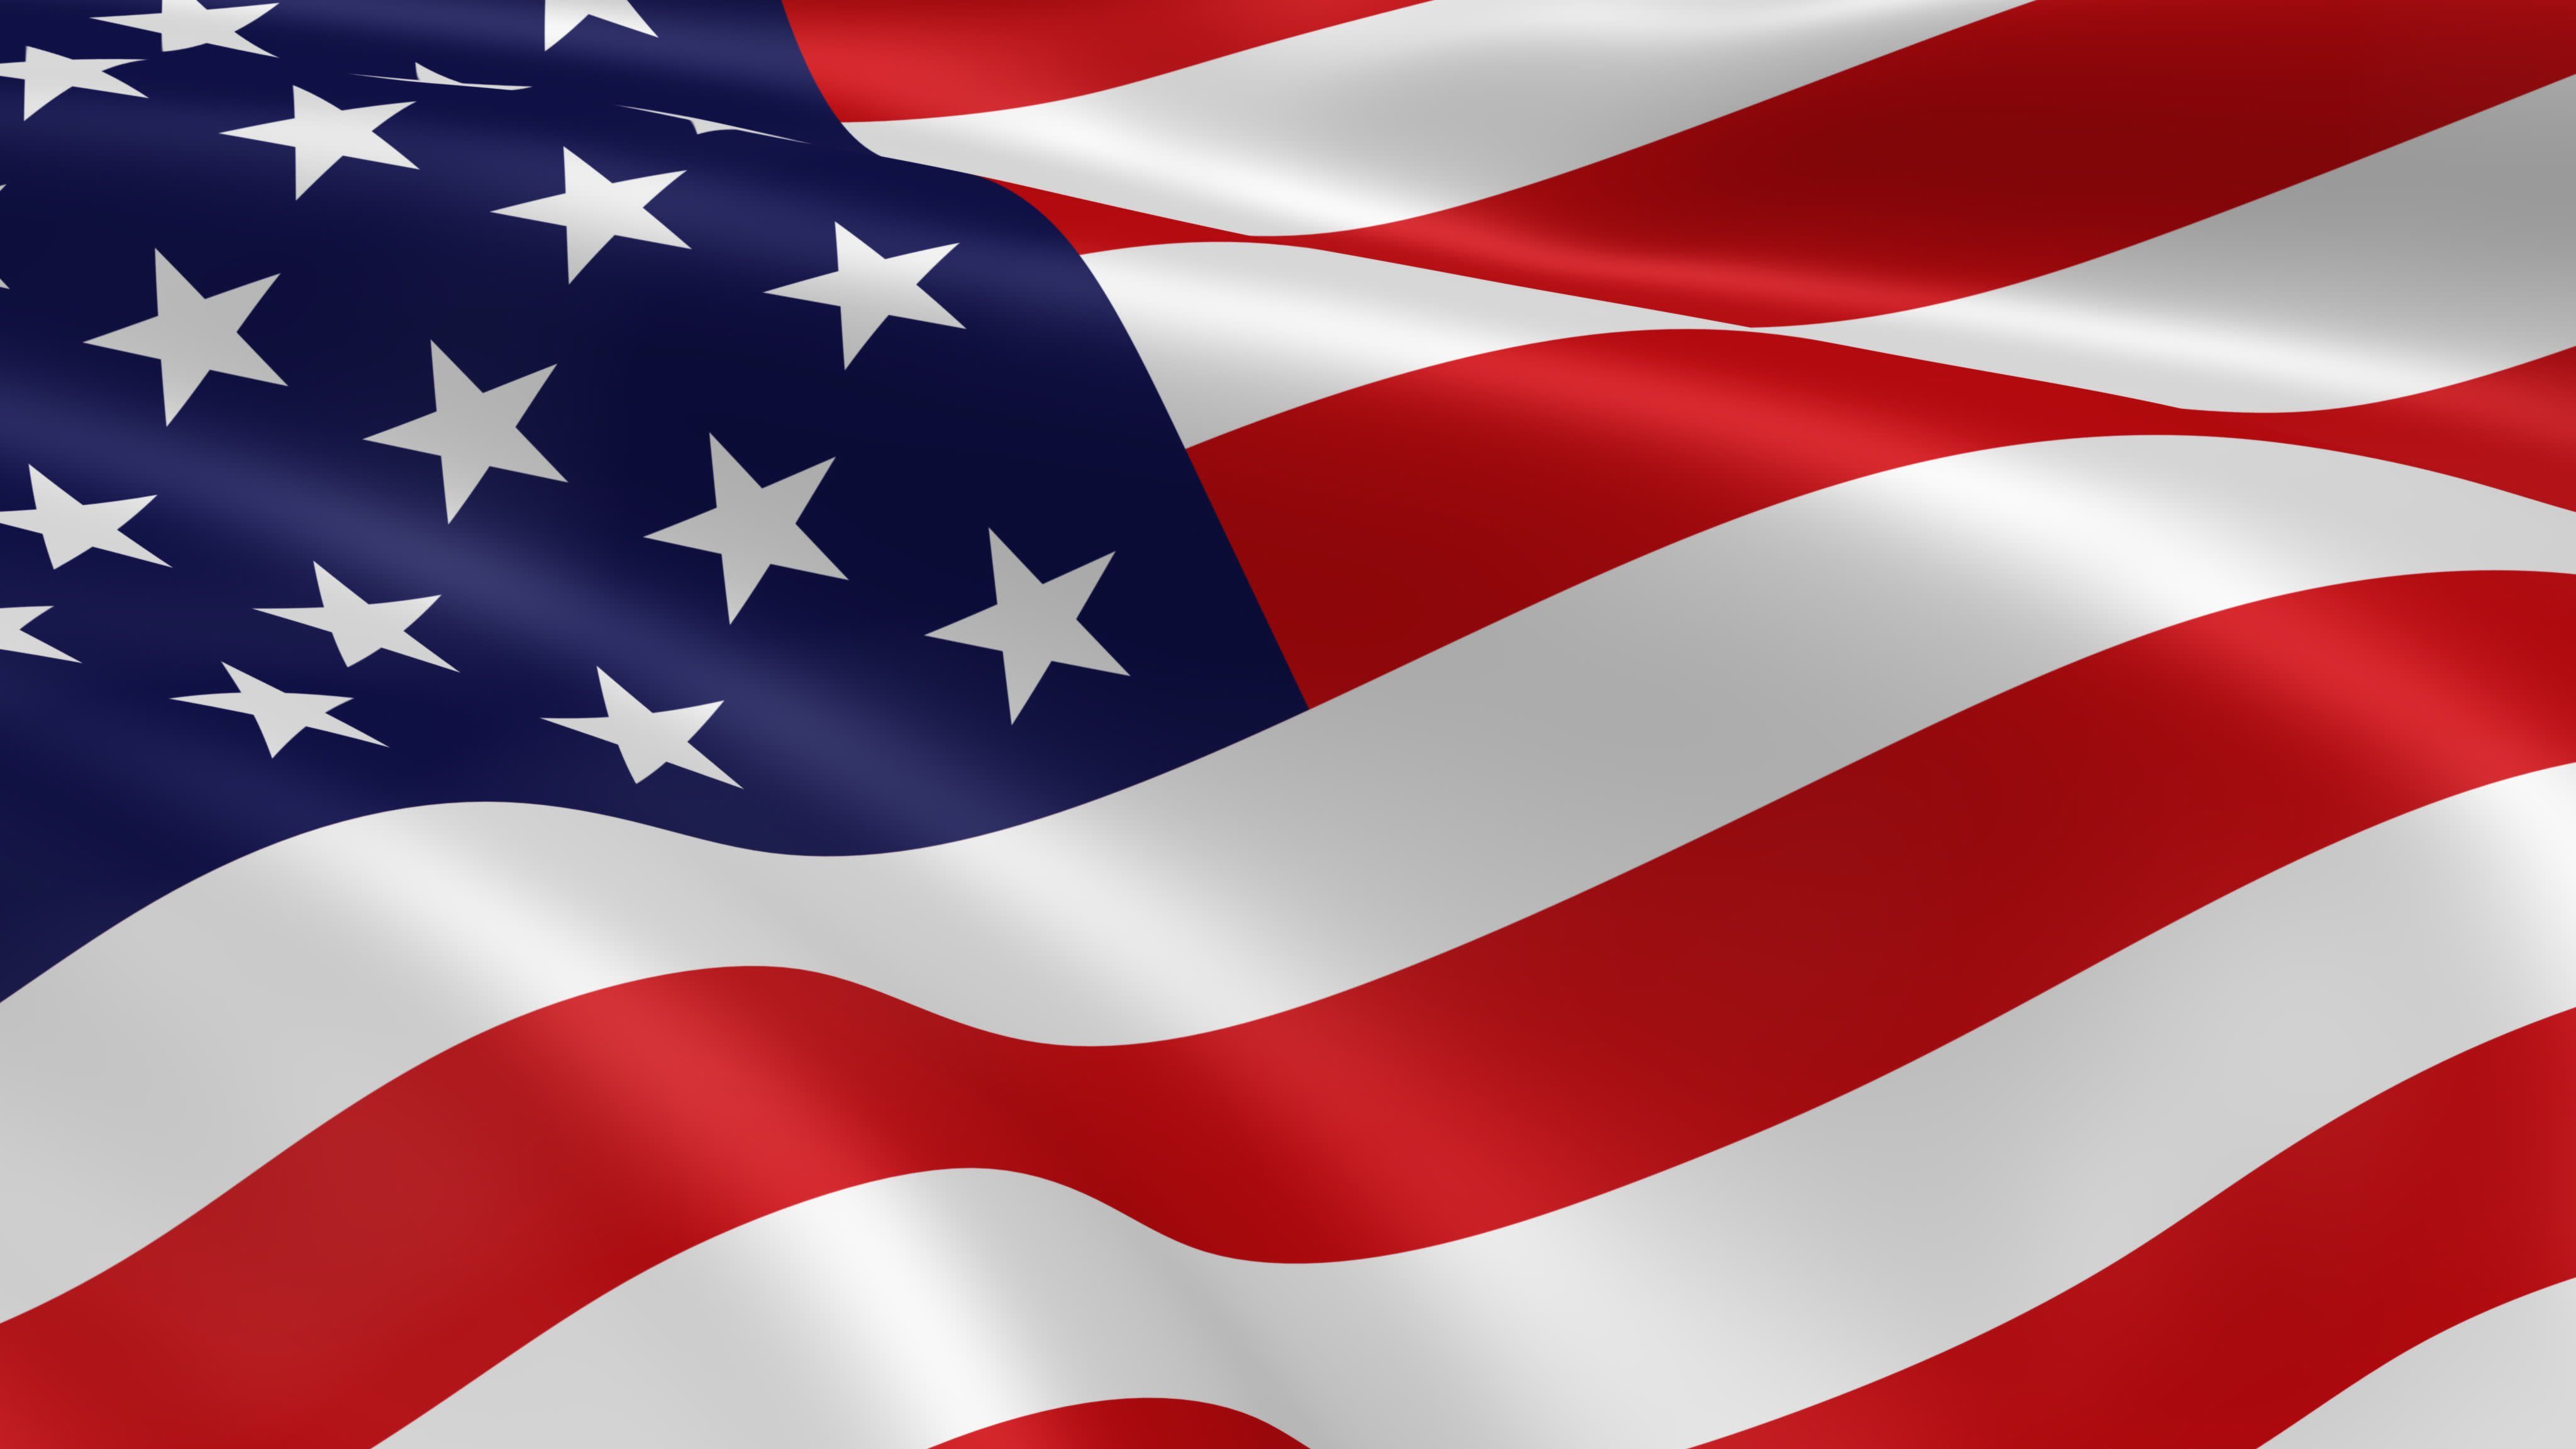 americanflag (1)